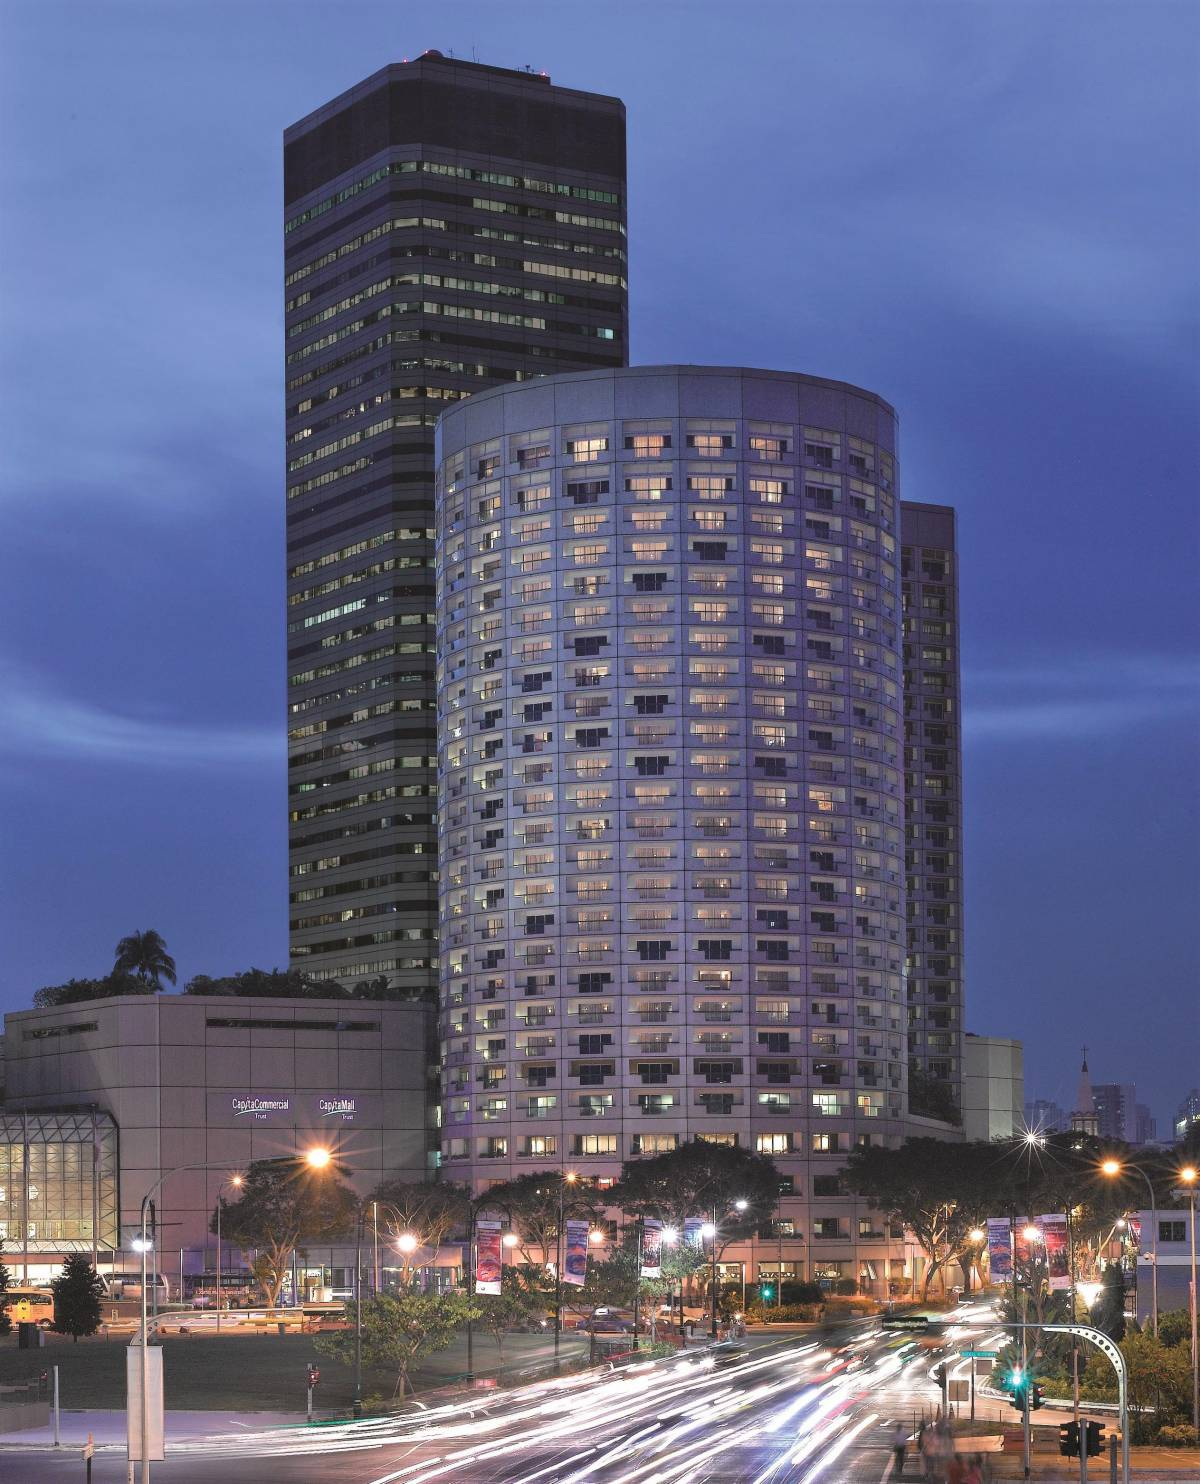 Winner of a Staycation at Fairmont Singapore